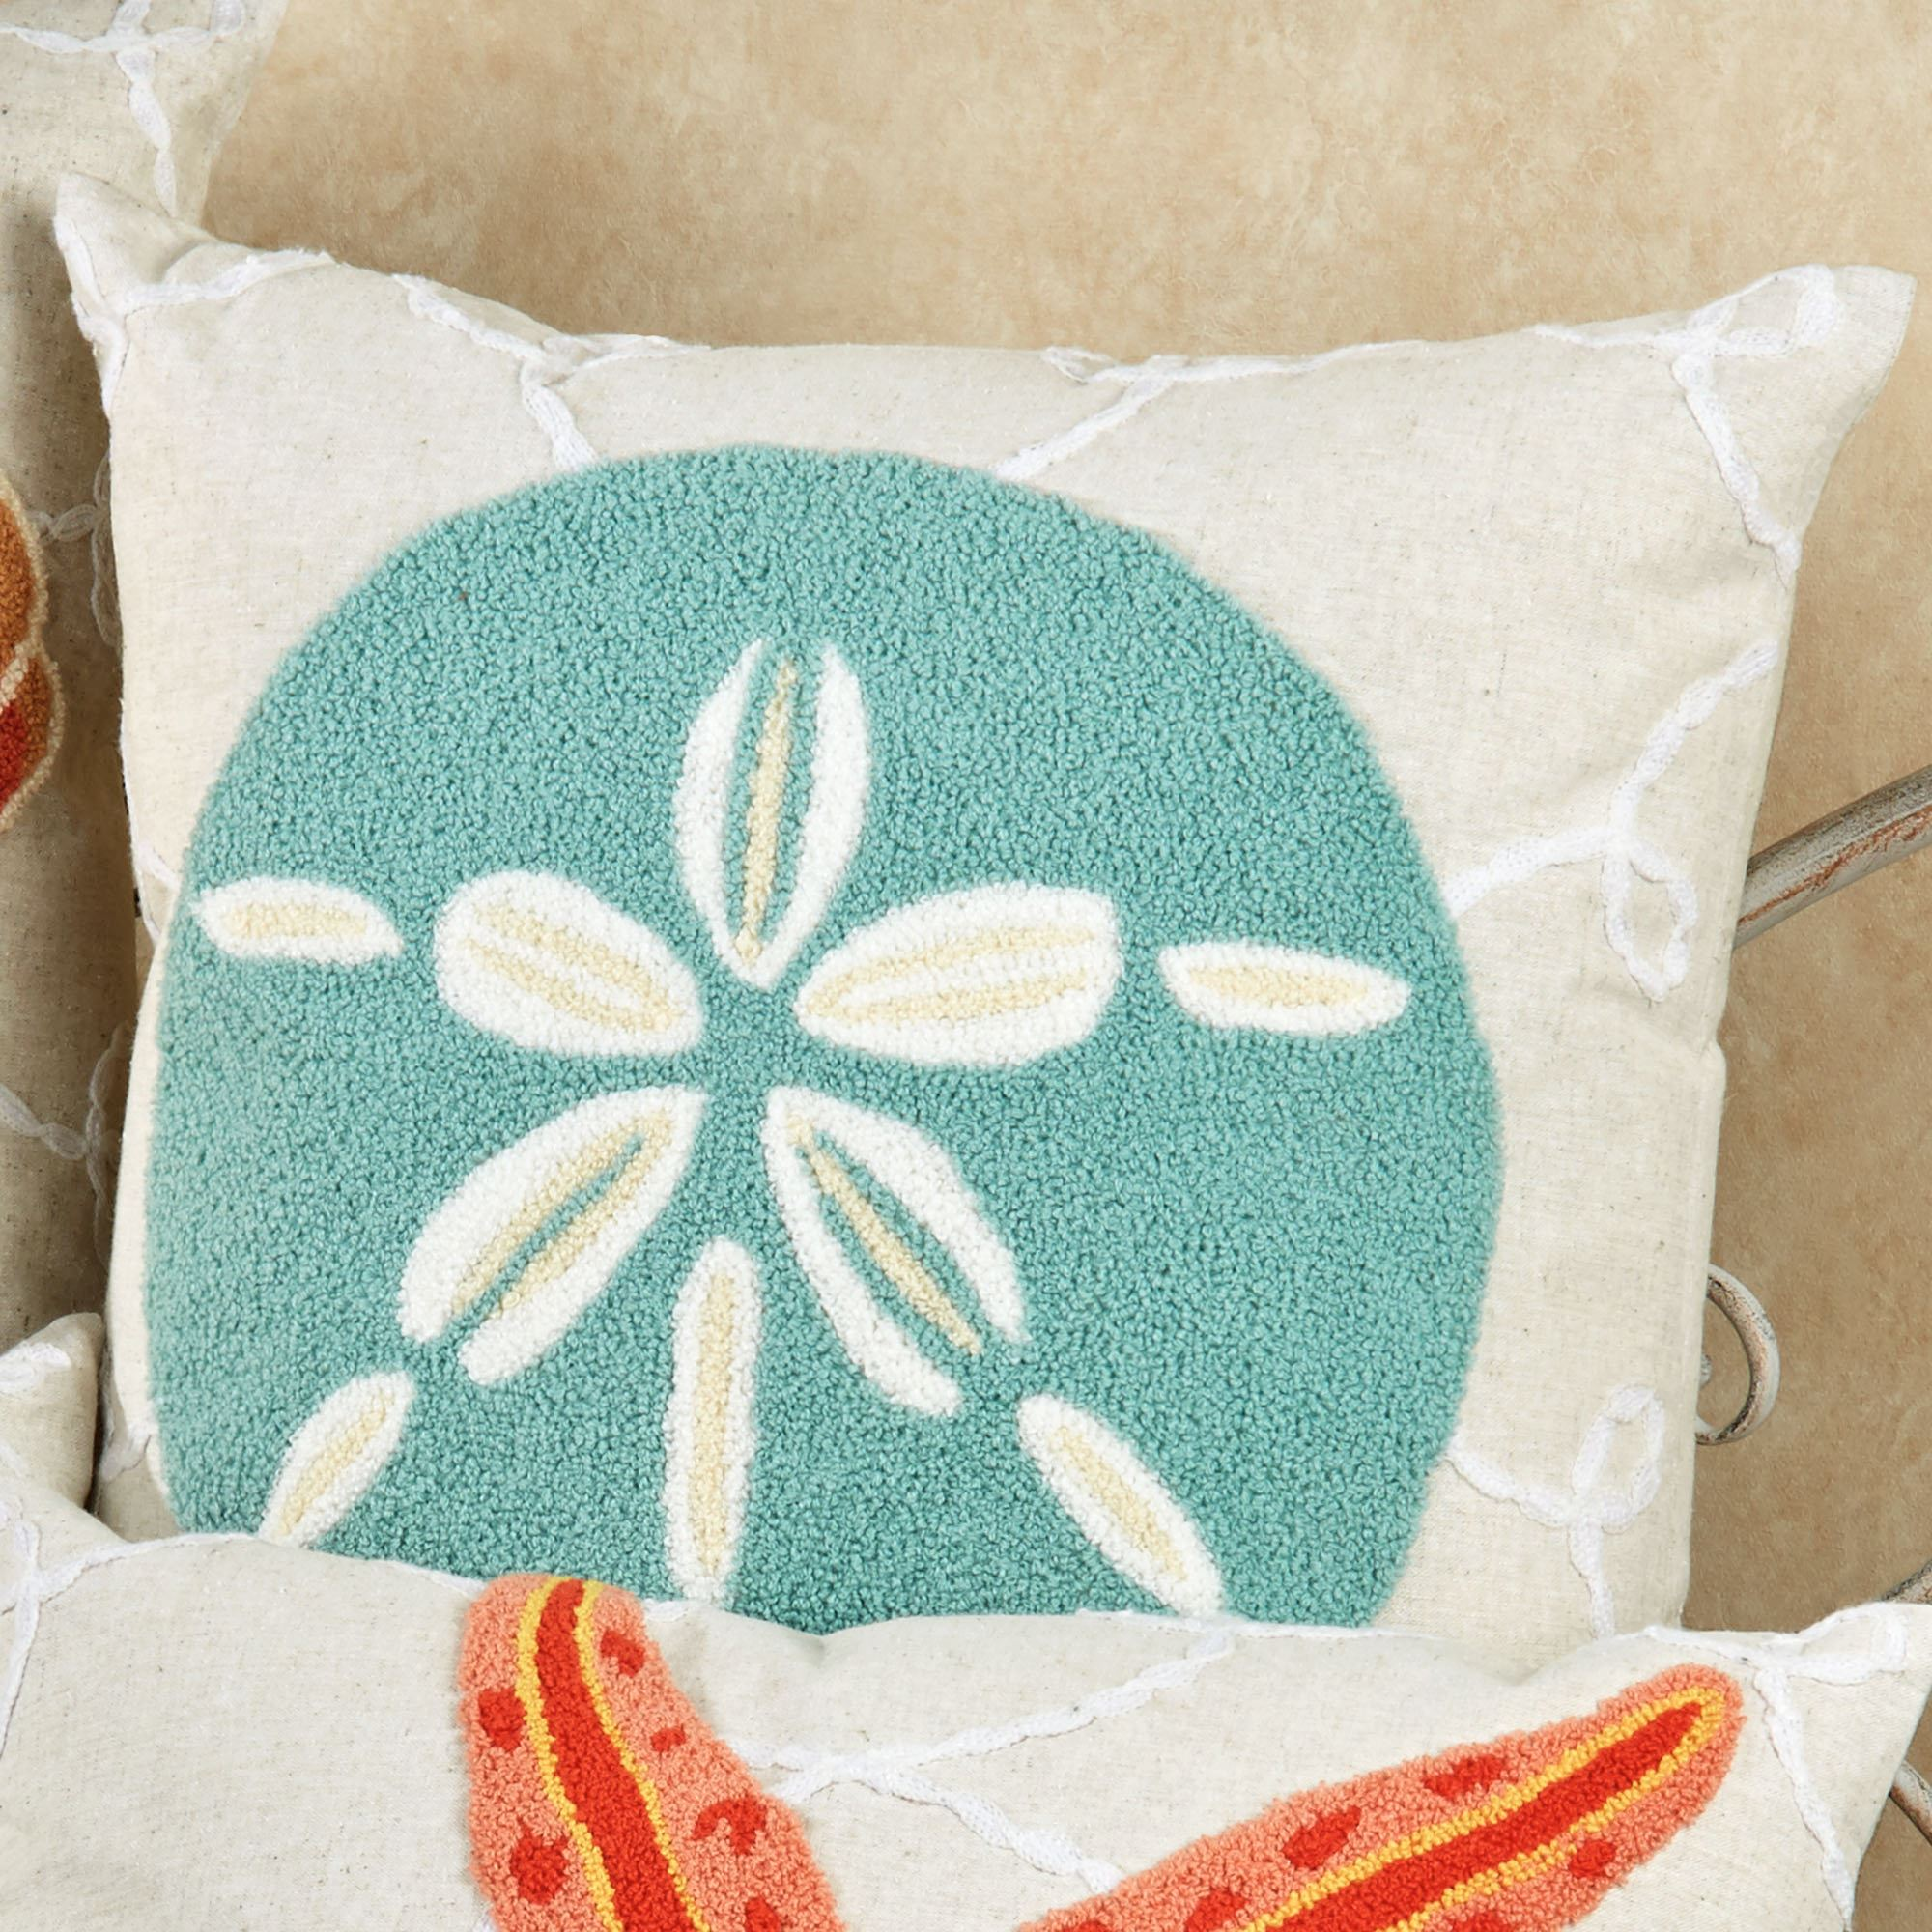 beach accessories pillow com pillows snoozy by products beachstore